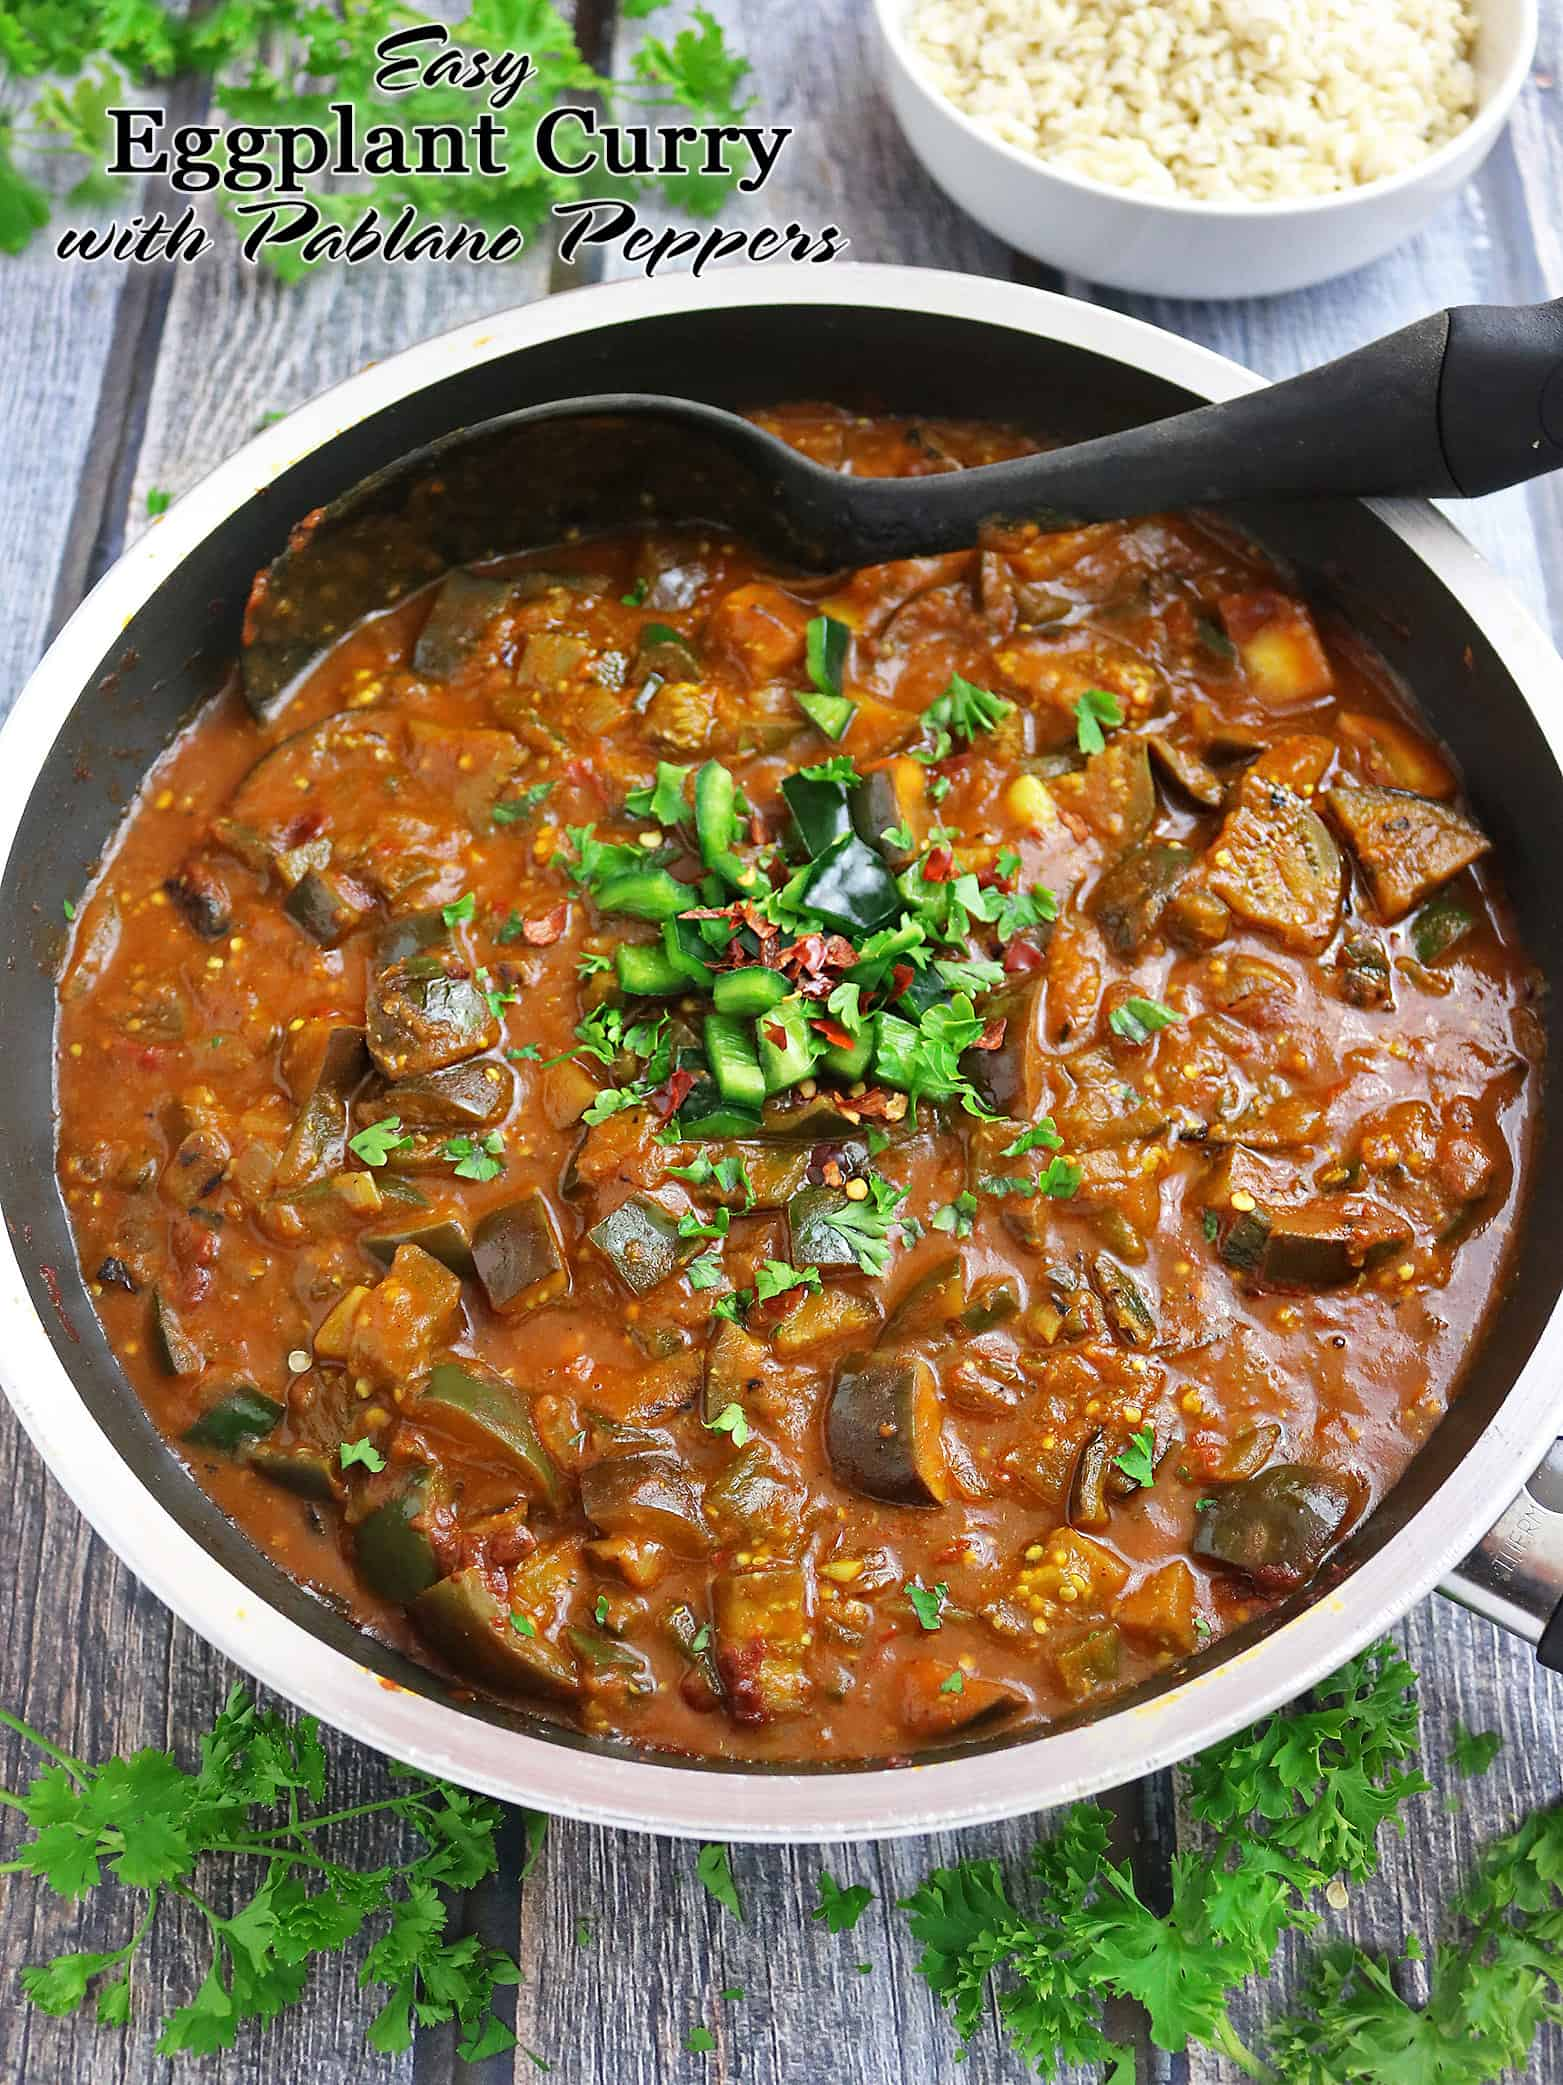 Easy Eggplant Curry With Pablano peppers